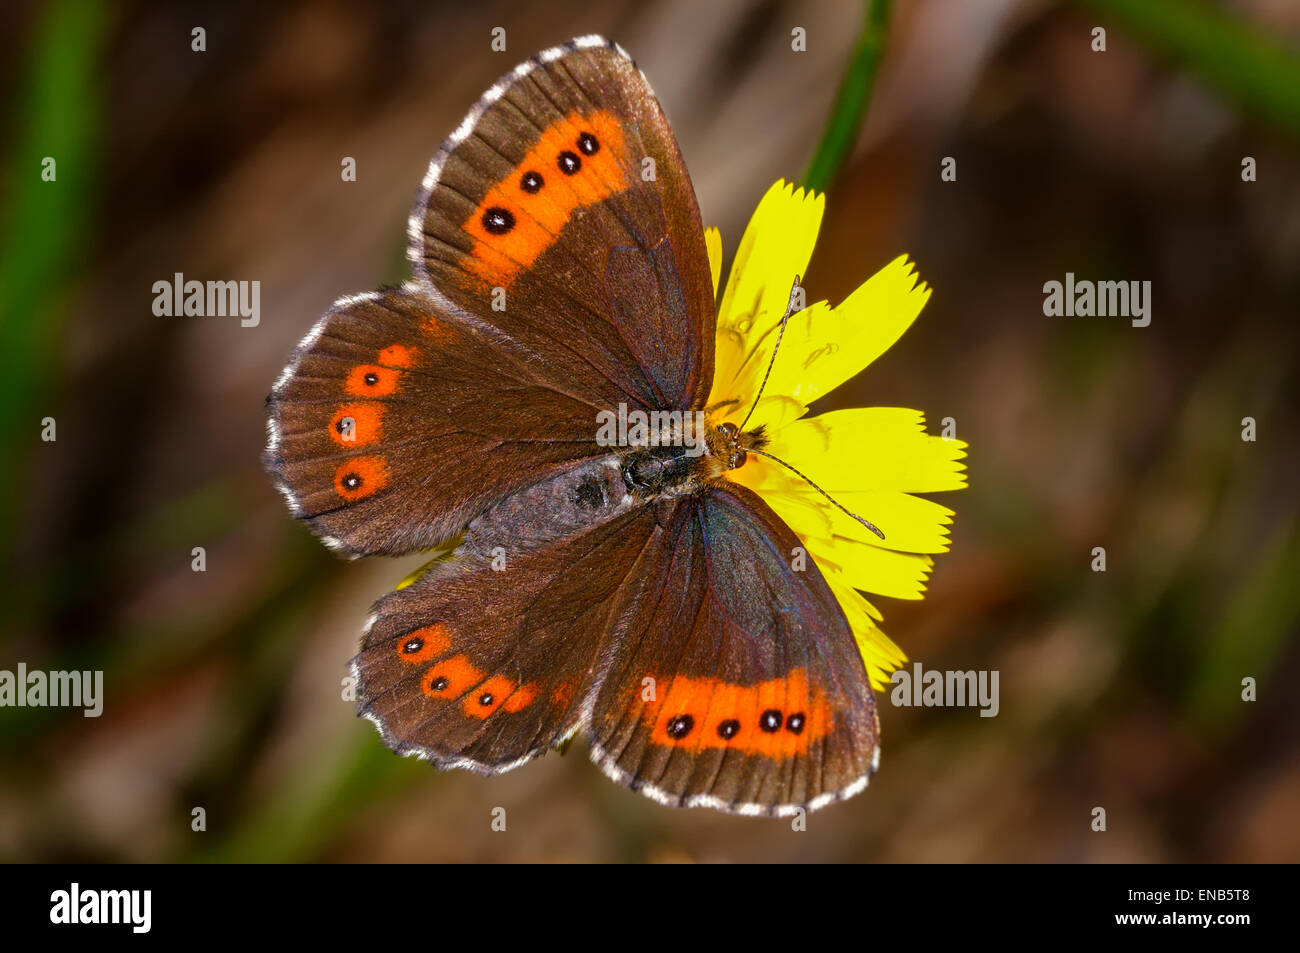 arran brown, erebia ligea - Stock Image